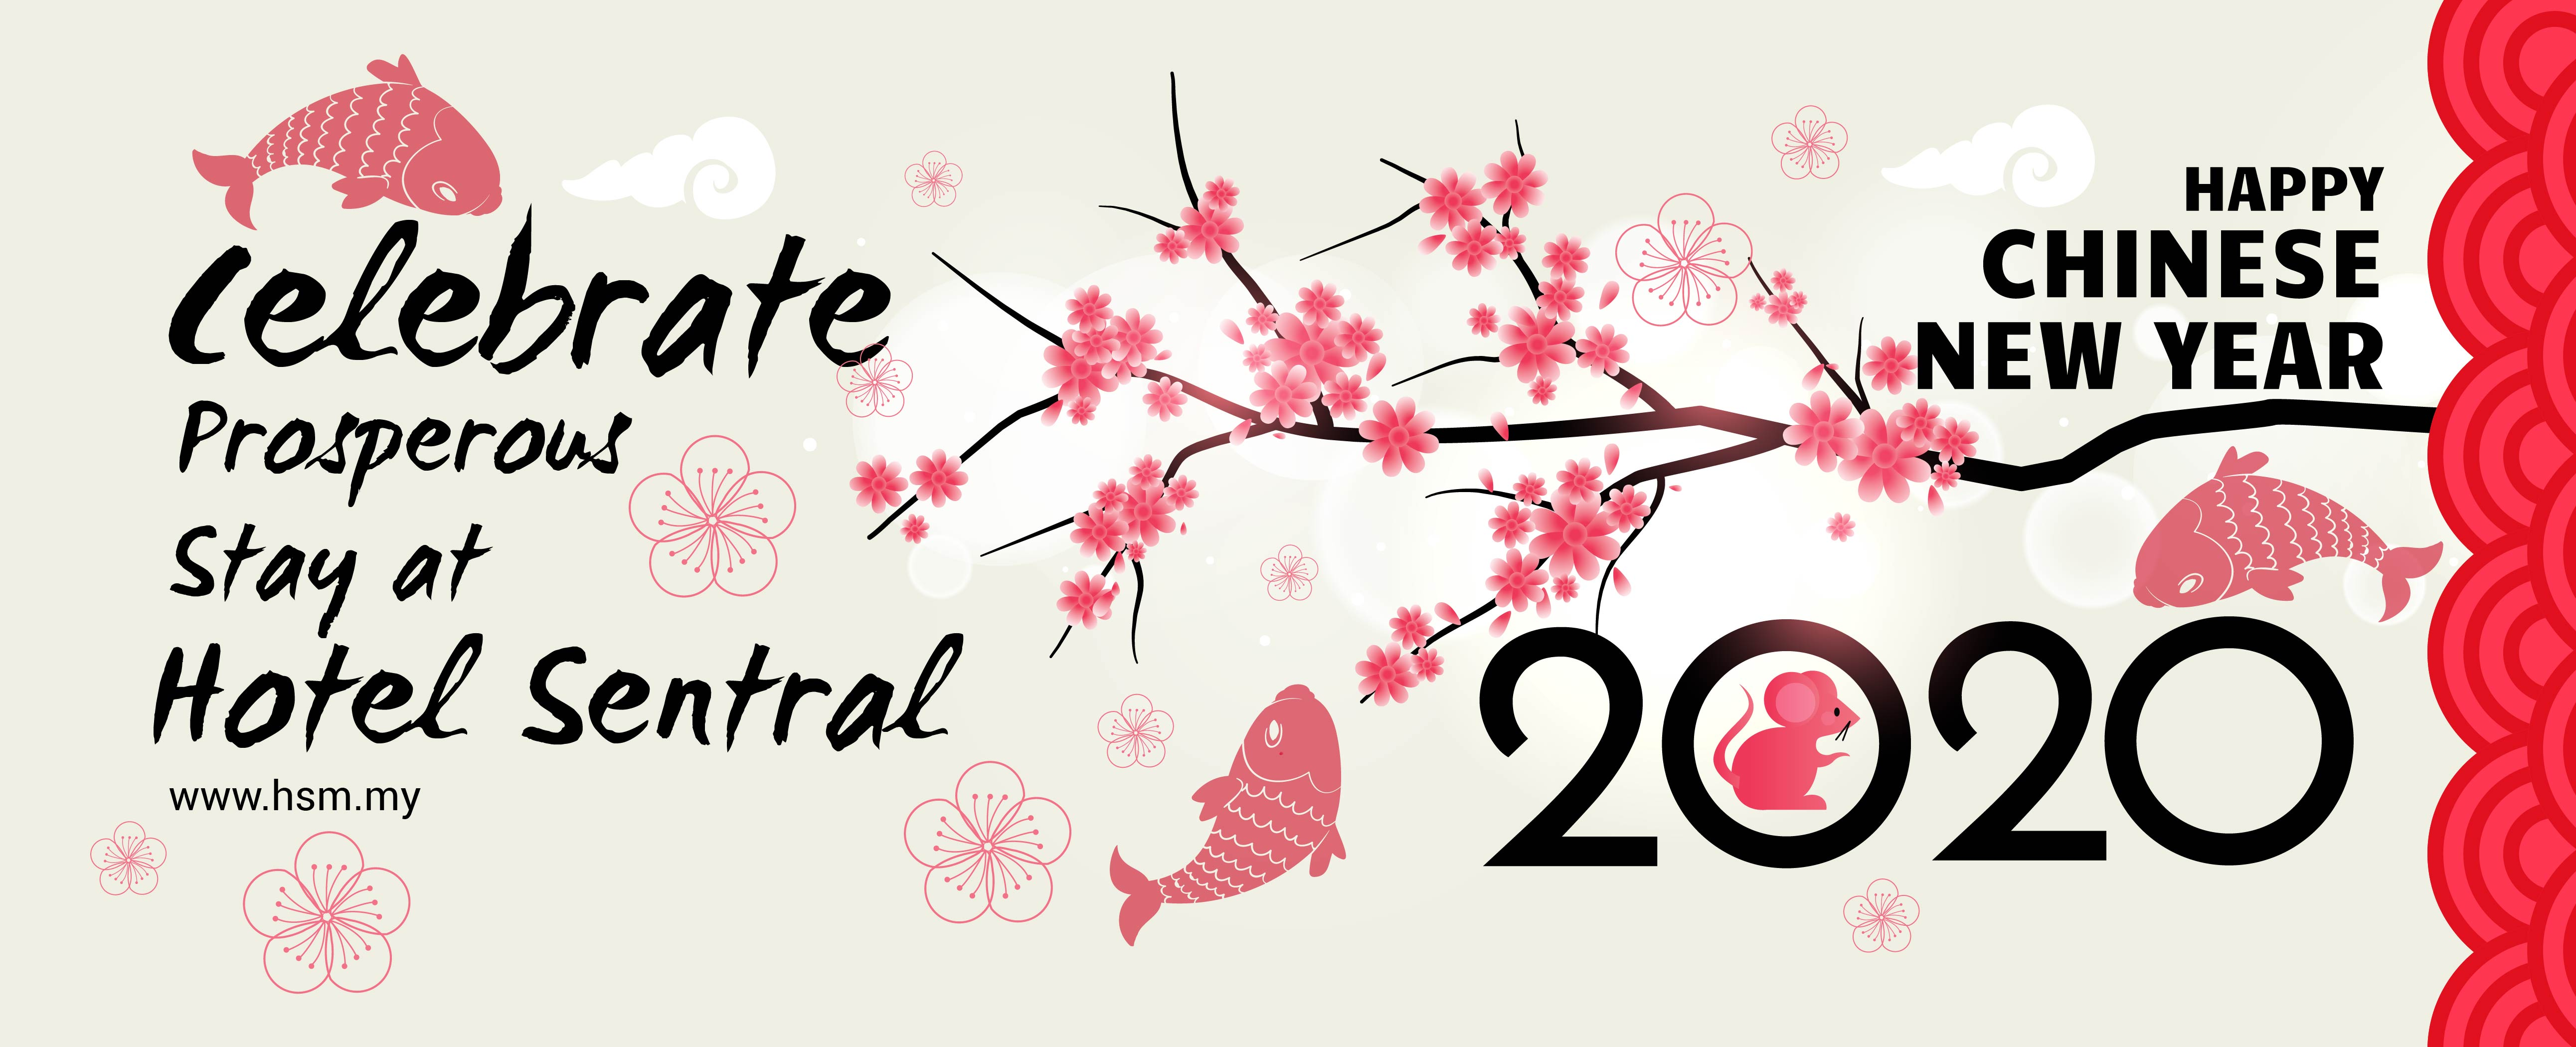 Hotel Sentral - Chinese New Year Banner